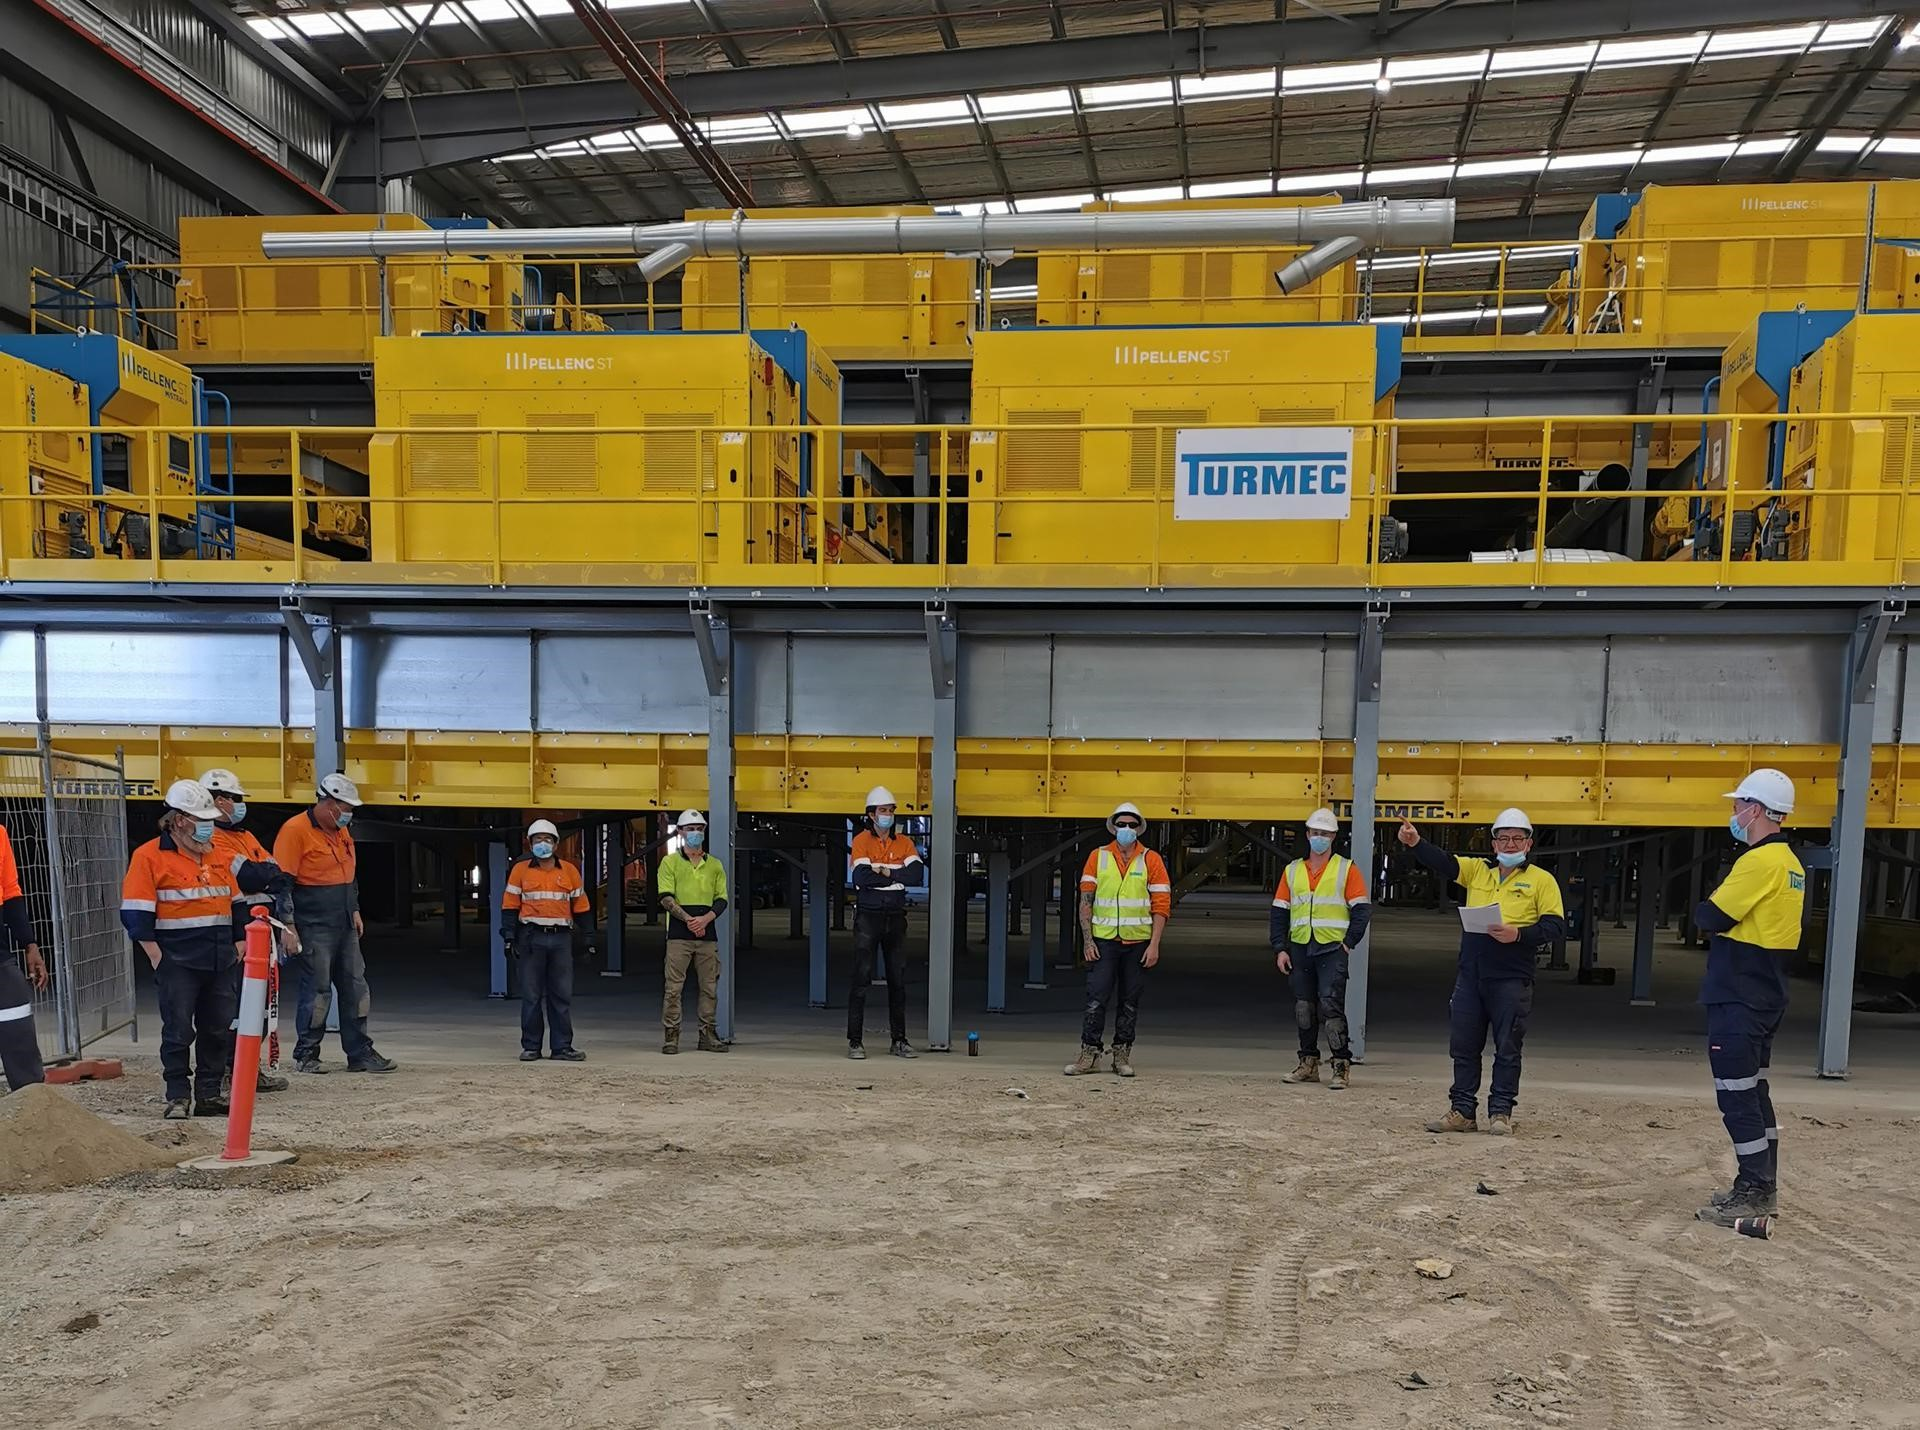 Turmec conducted refresher TBT (Tool Box Talk) under Covid Prevention Plan in Sydney Australia